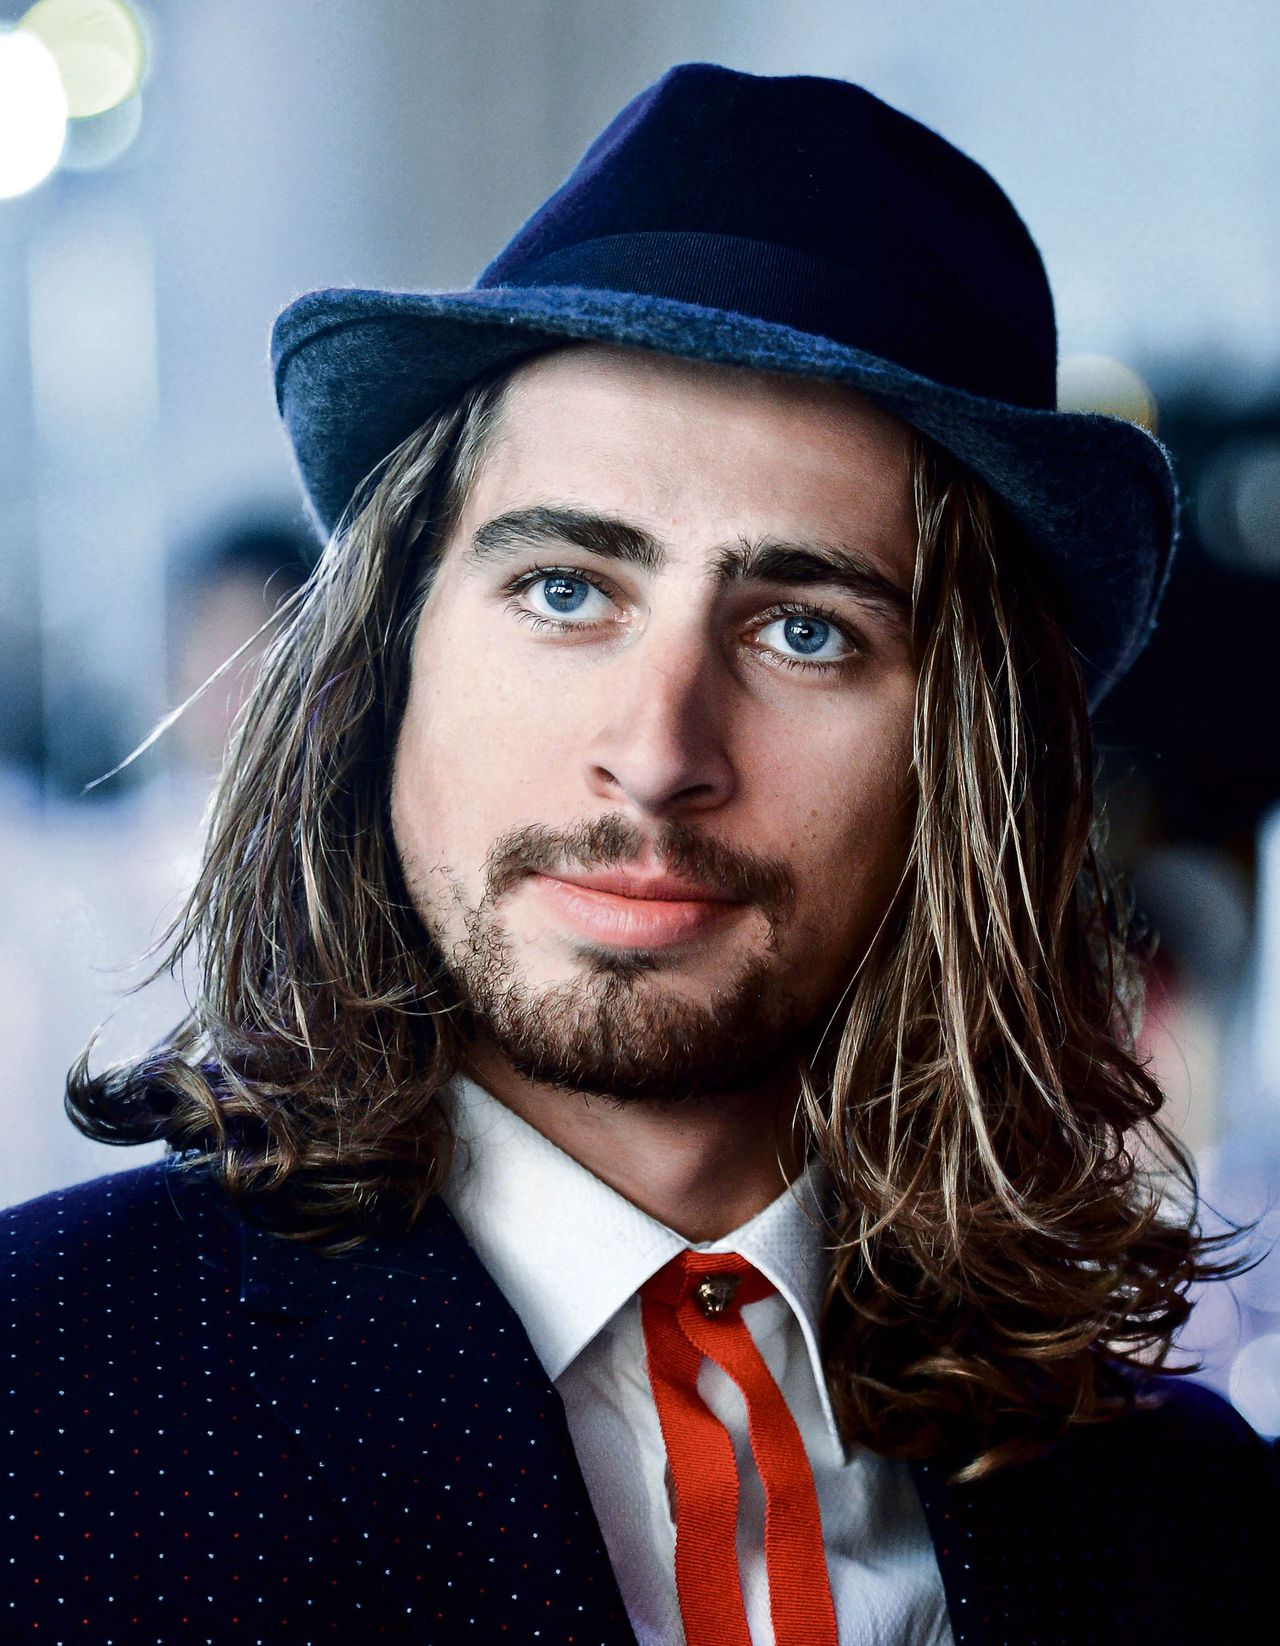 Peter Sagan during the last year's UCI cycling gala in Doha, Qatar.